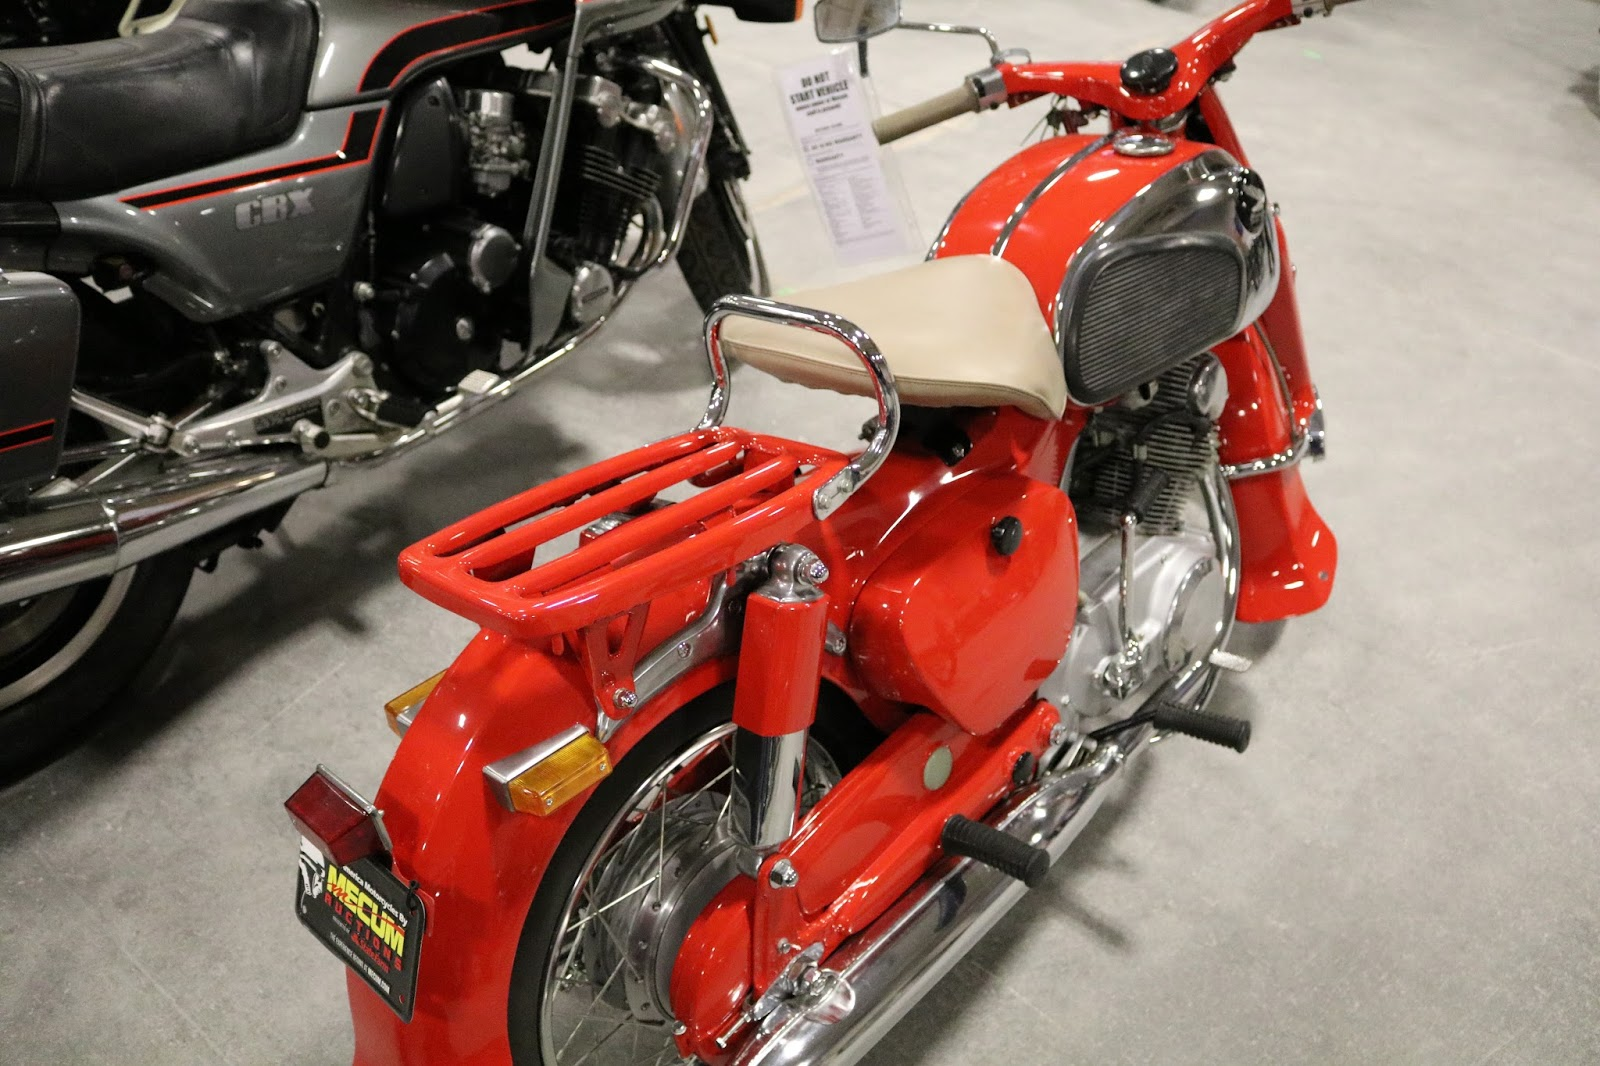 Honda Cb Cl 450 4speed Electrical Wiring Diagram